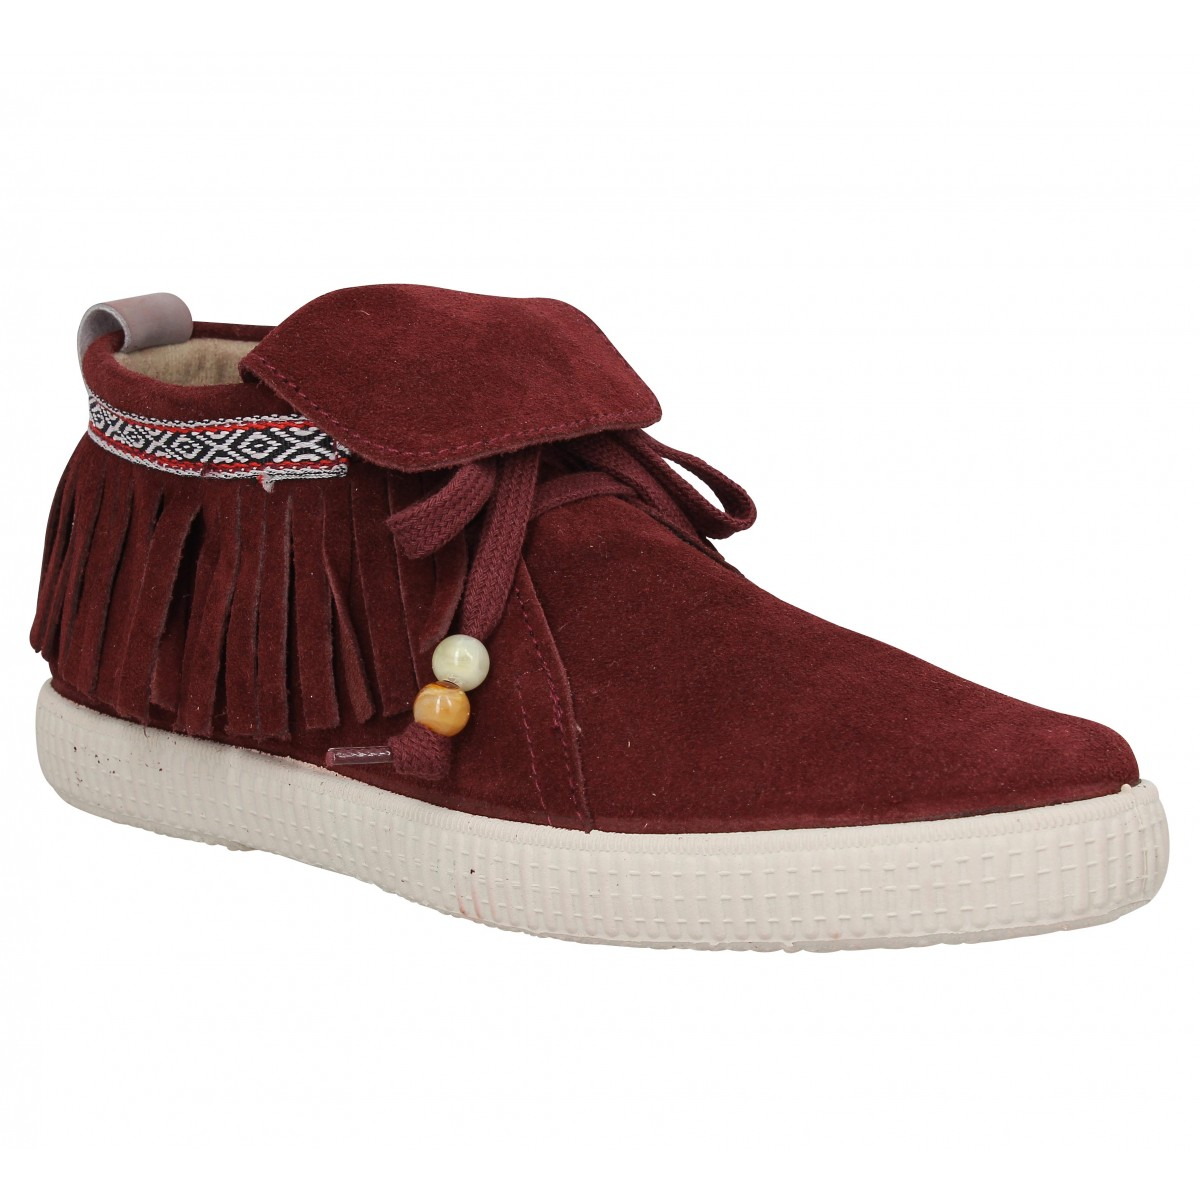 Baskets VICTORIA 66100 velours Femme Bordeaux